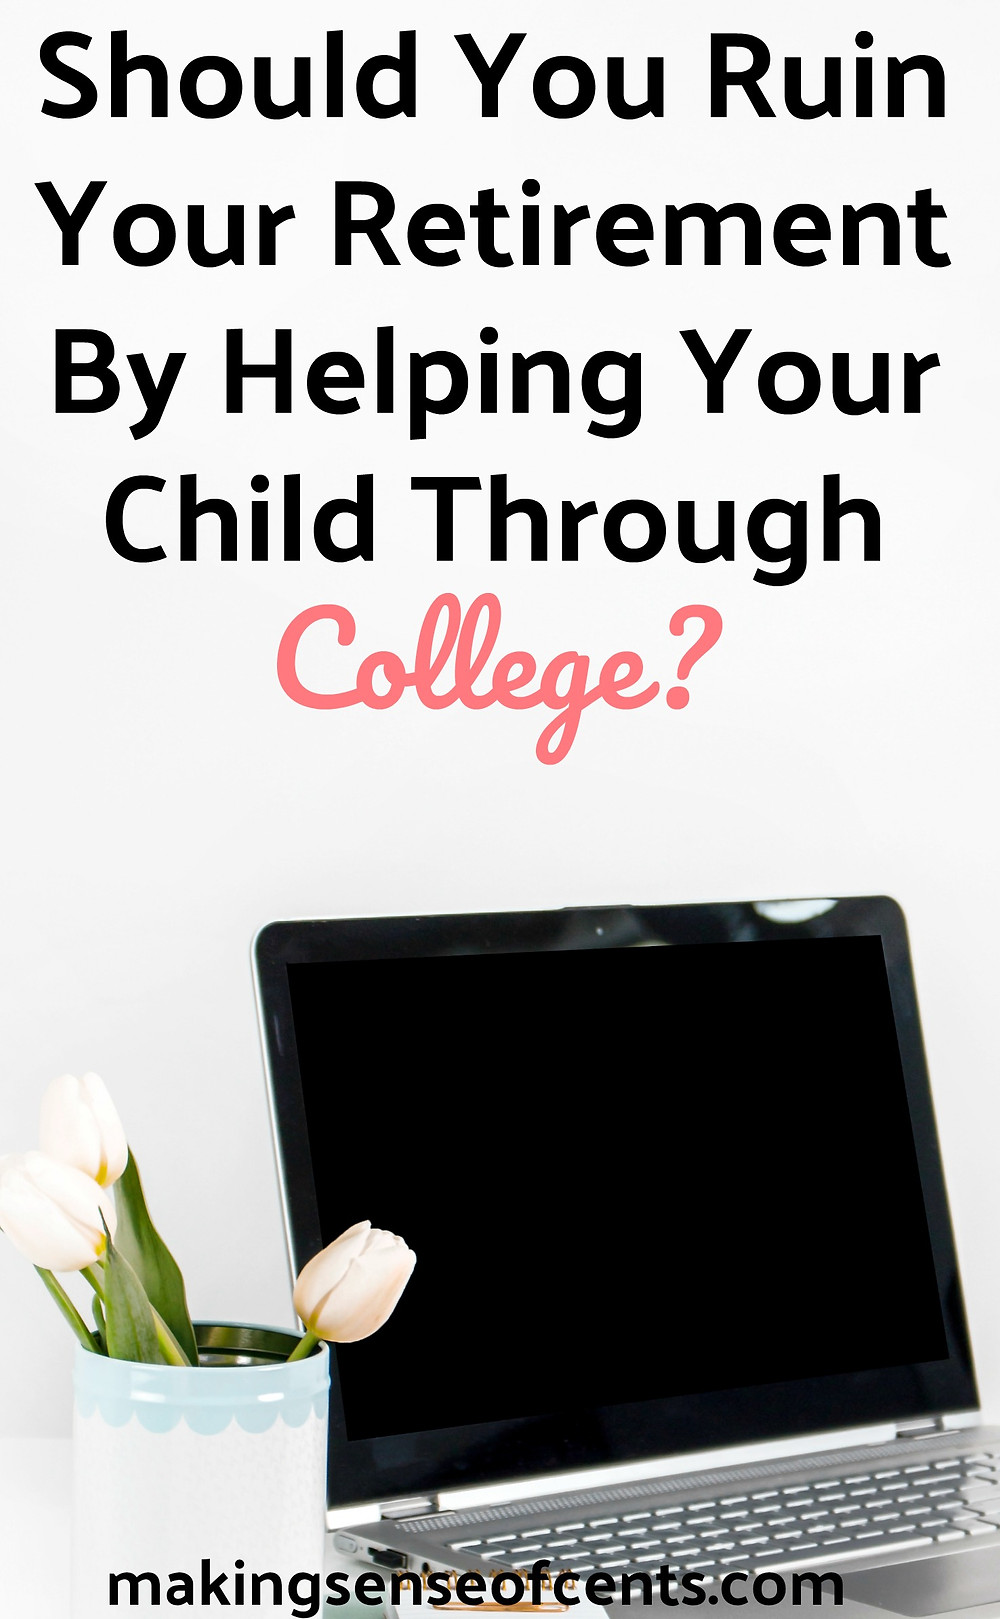 Should I Ruin My Retirement By Helping My Child Through College?